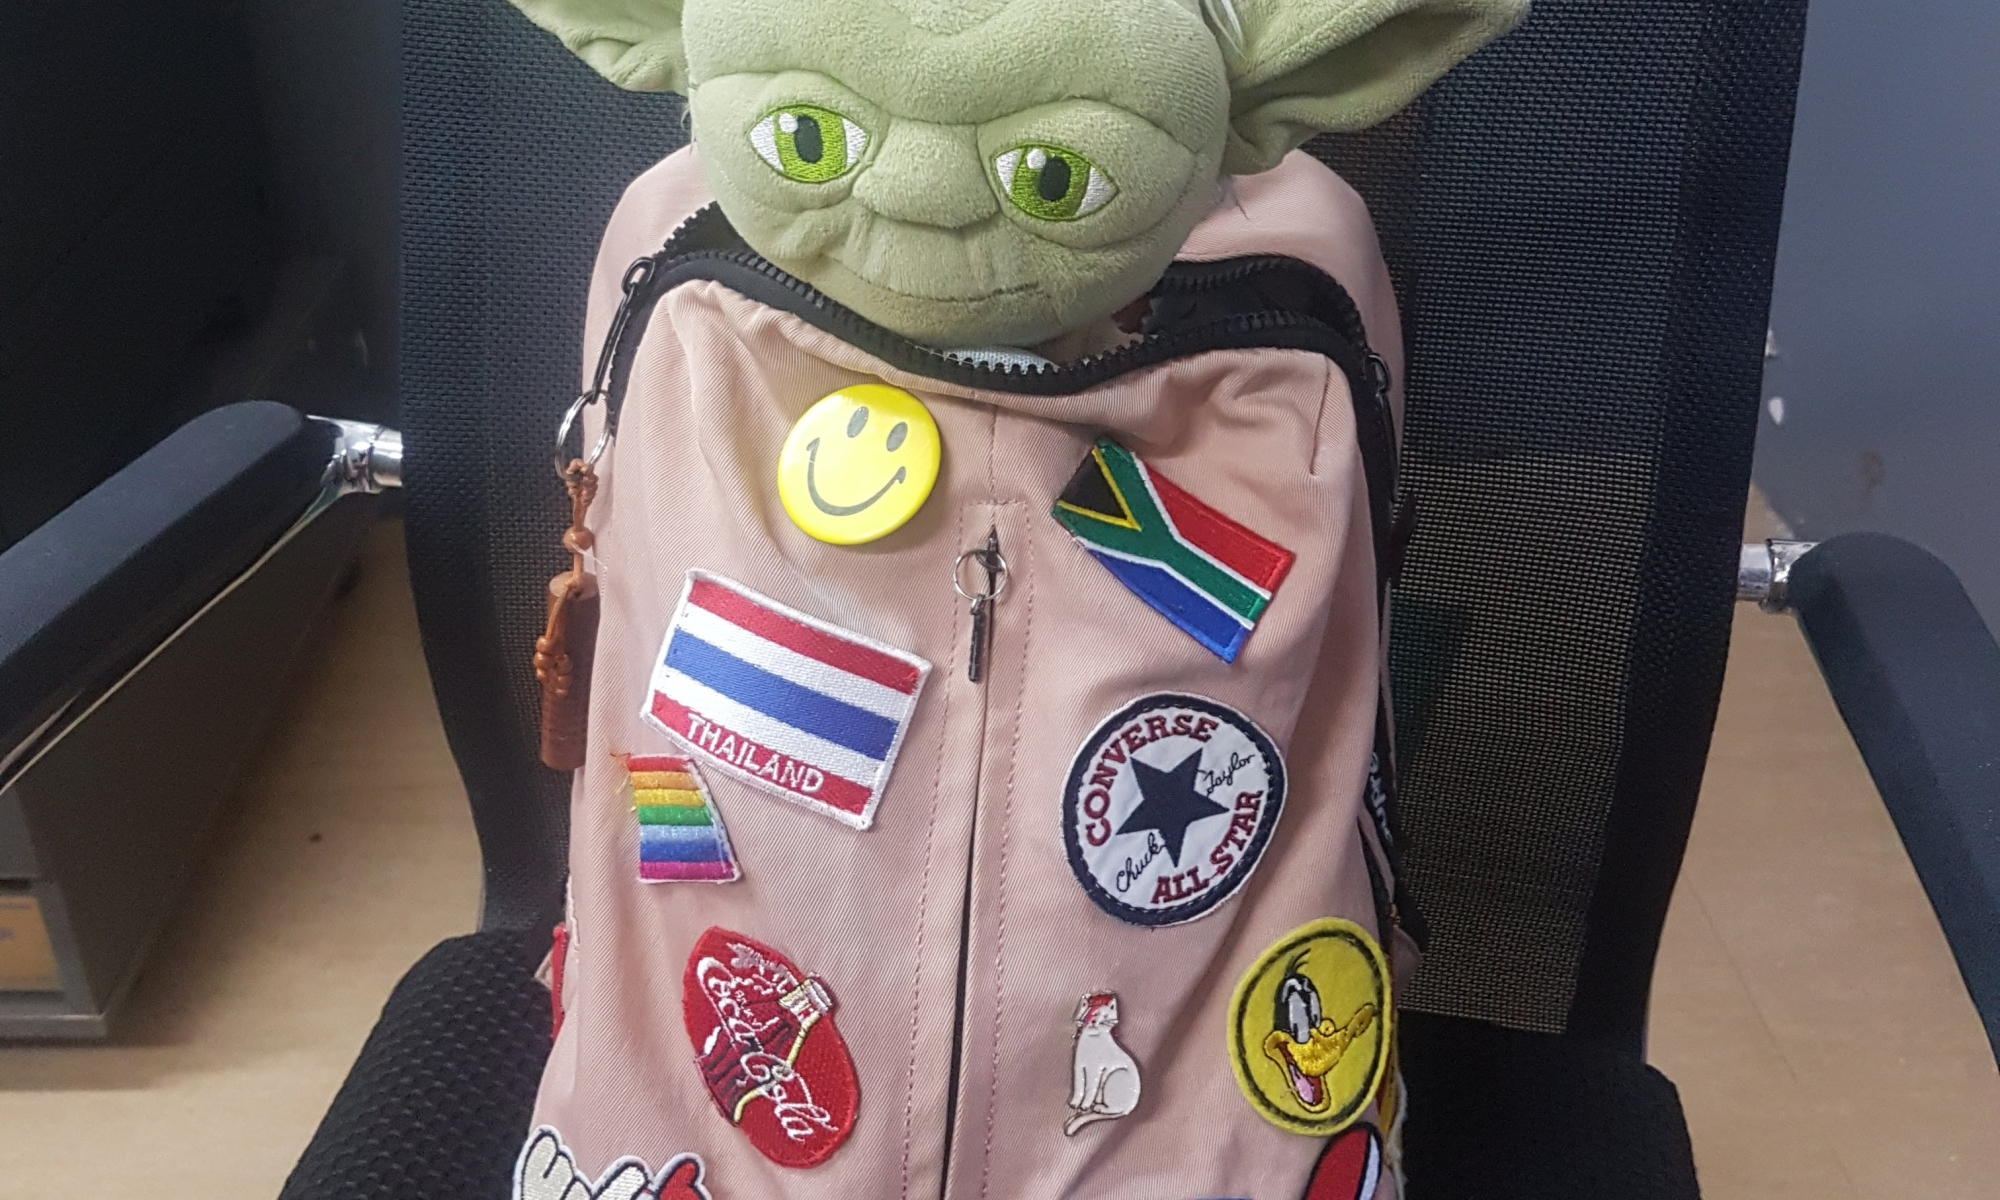 School bag with yoda doll inside